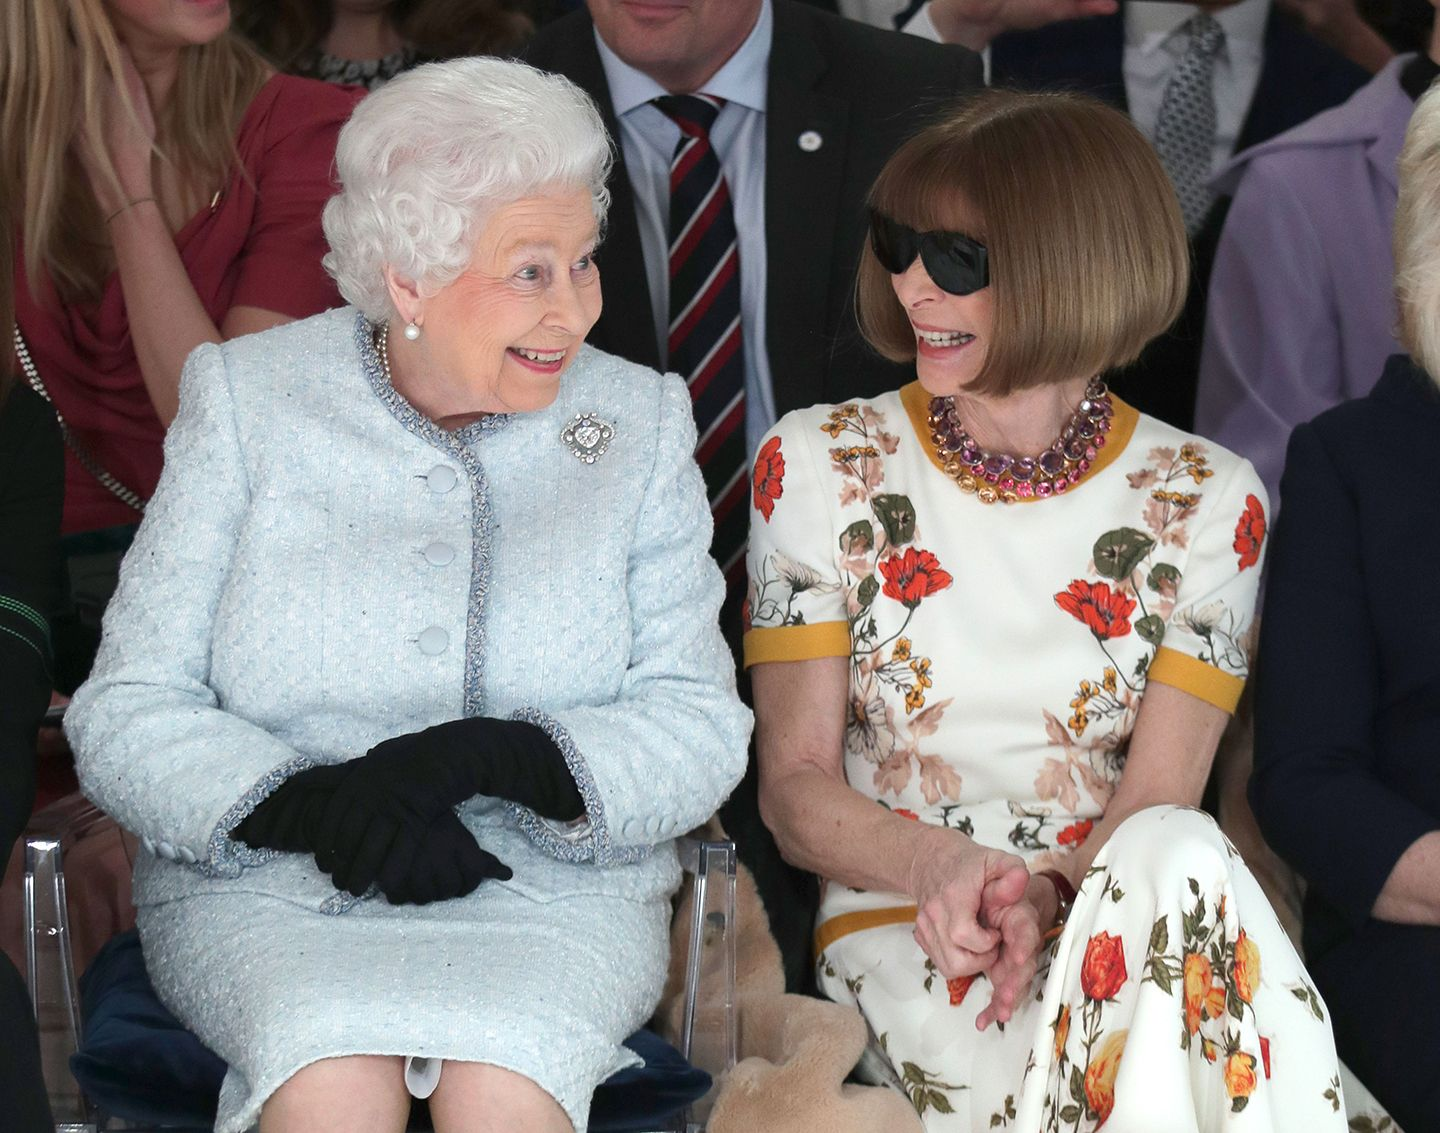 Anna and the Queen